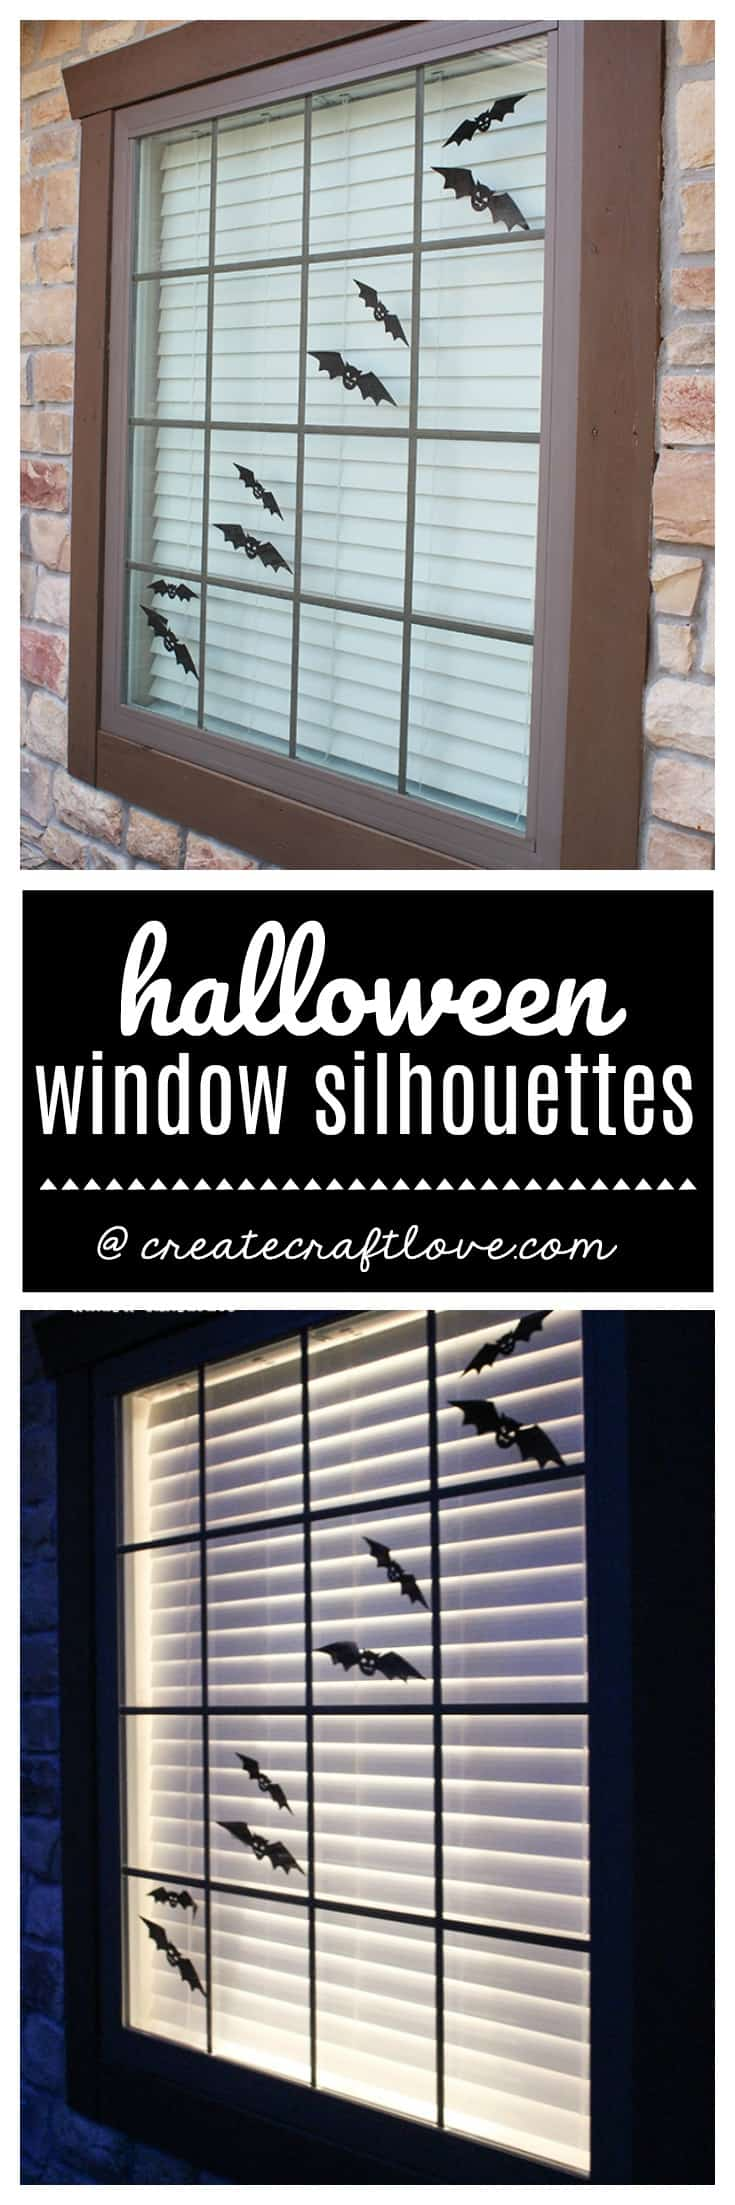 create an outdoor halloween scene with these window silhouettes